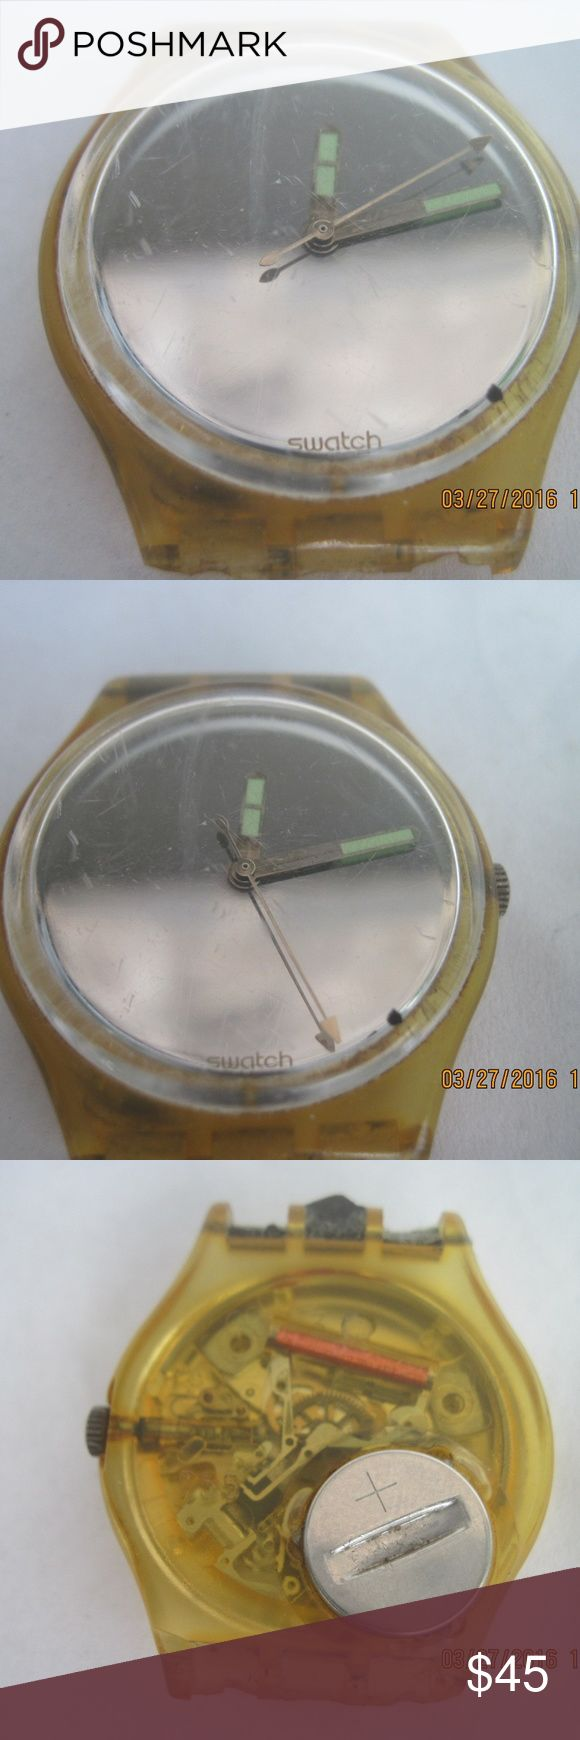 """Men's SWATCH Swiss Made Watch w/o Band & Numbers WORKING WATCH without band in a workin and used condition.  Features: Missing band that appears to have been broken off from the base. Some scratches on the crystal. Swiss made. Battery included. Glow in the dark hand tips.Plain face without numbers, etc.. Vintage 1987.   Measurements include: 1.25"""" wide. Swatch Accessories Watches"""